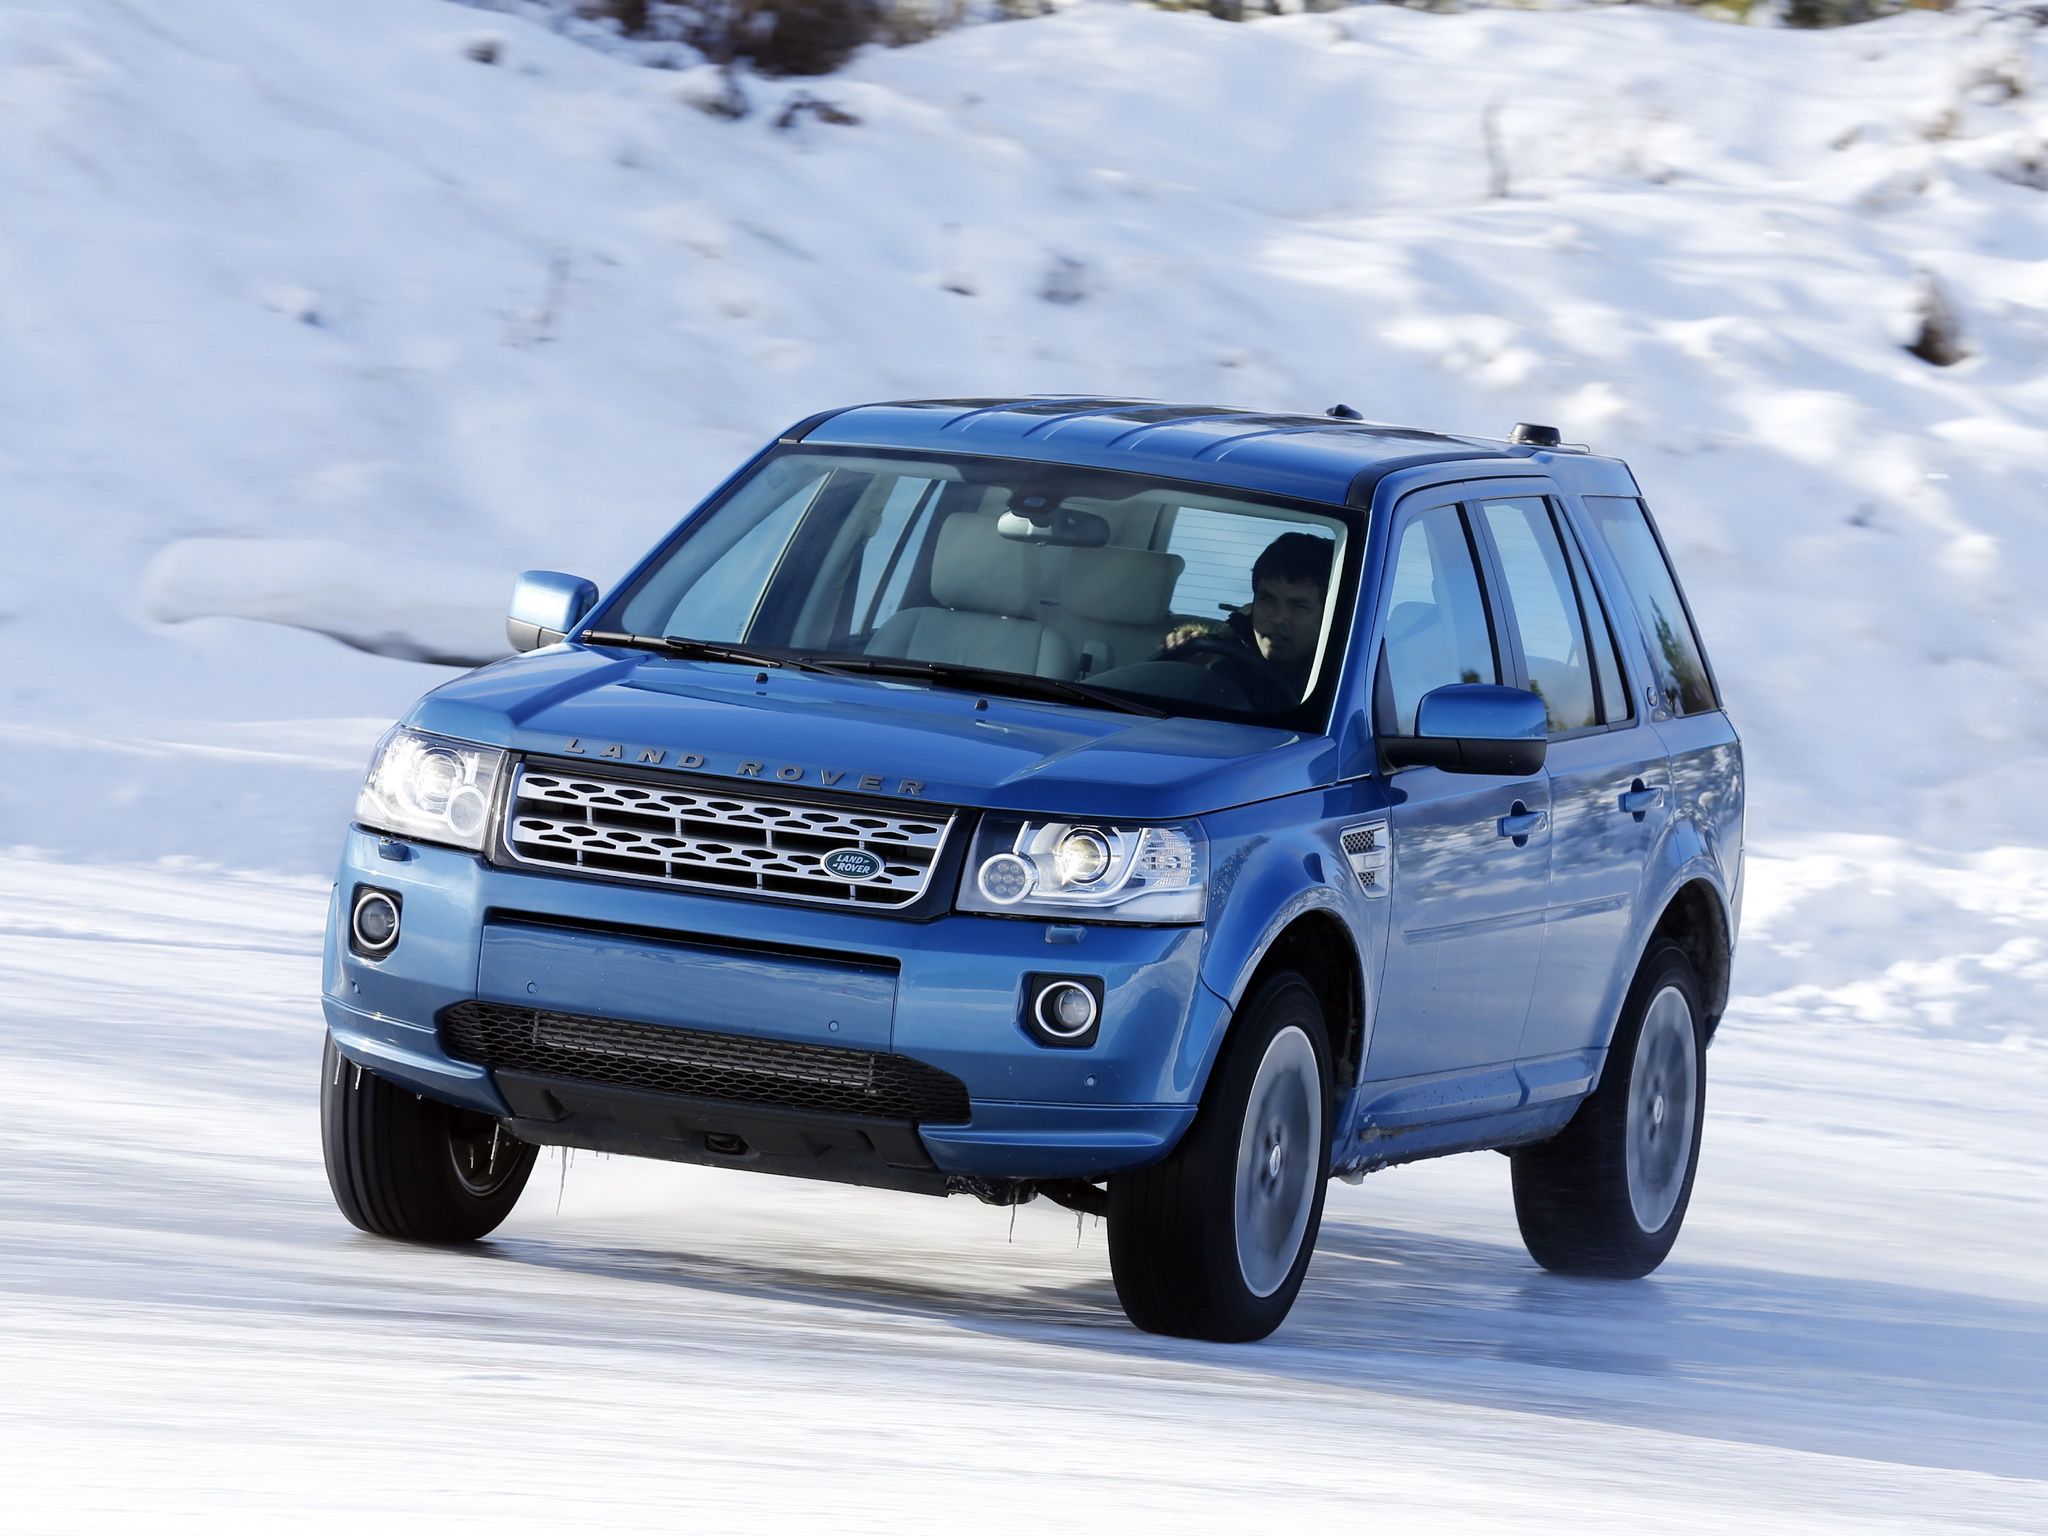 Land Rover Freelander II photo 99731